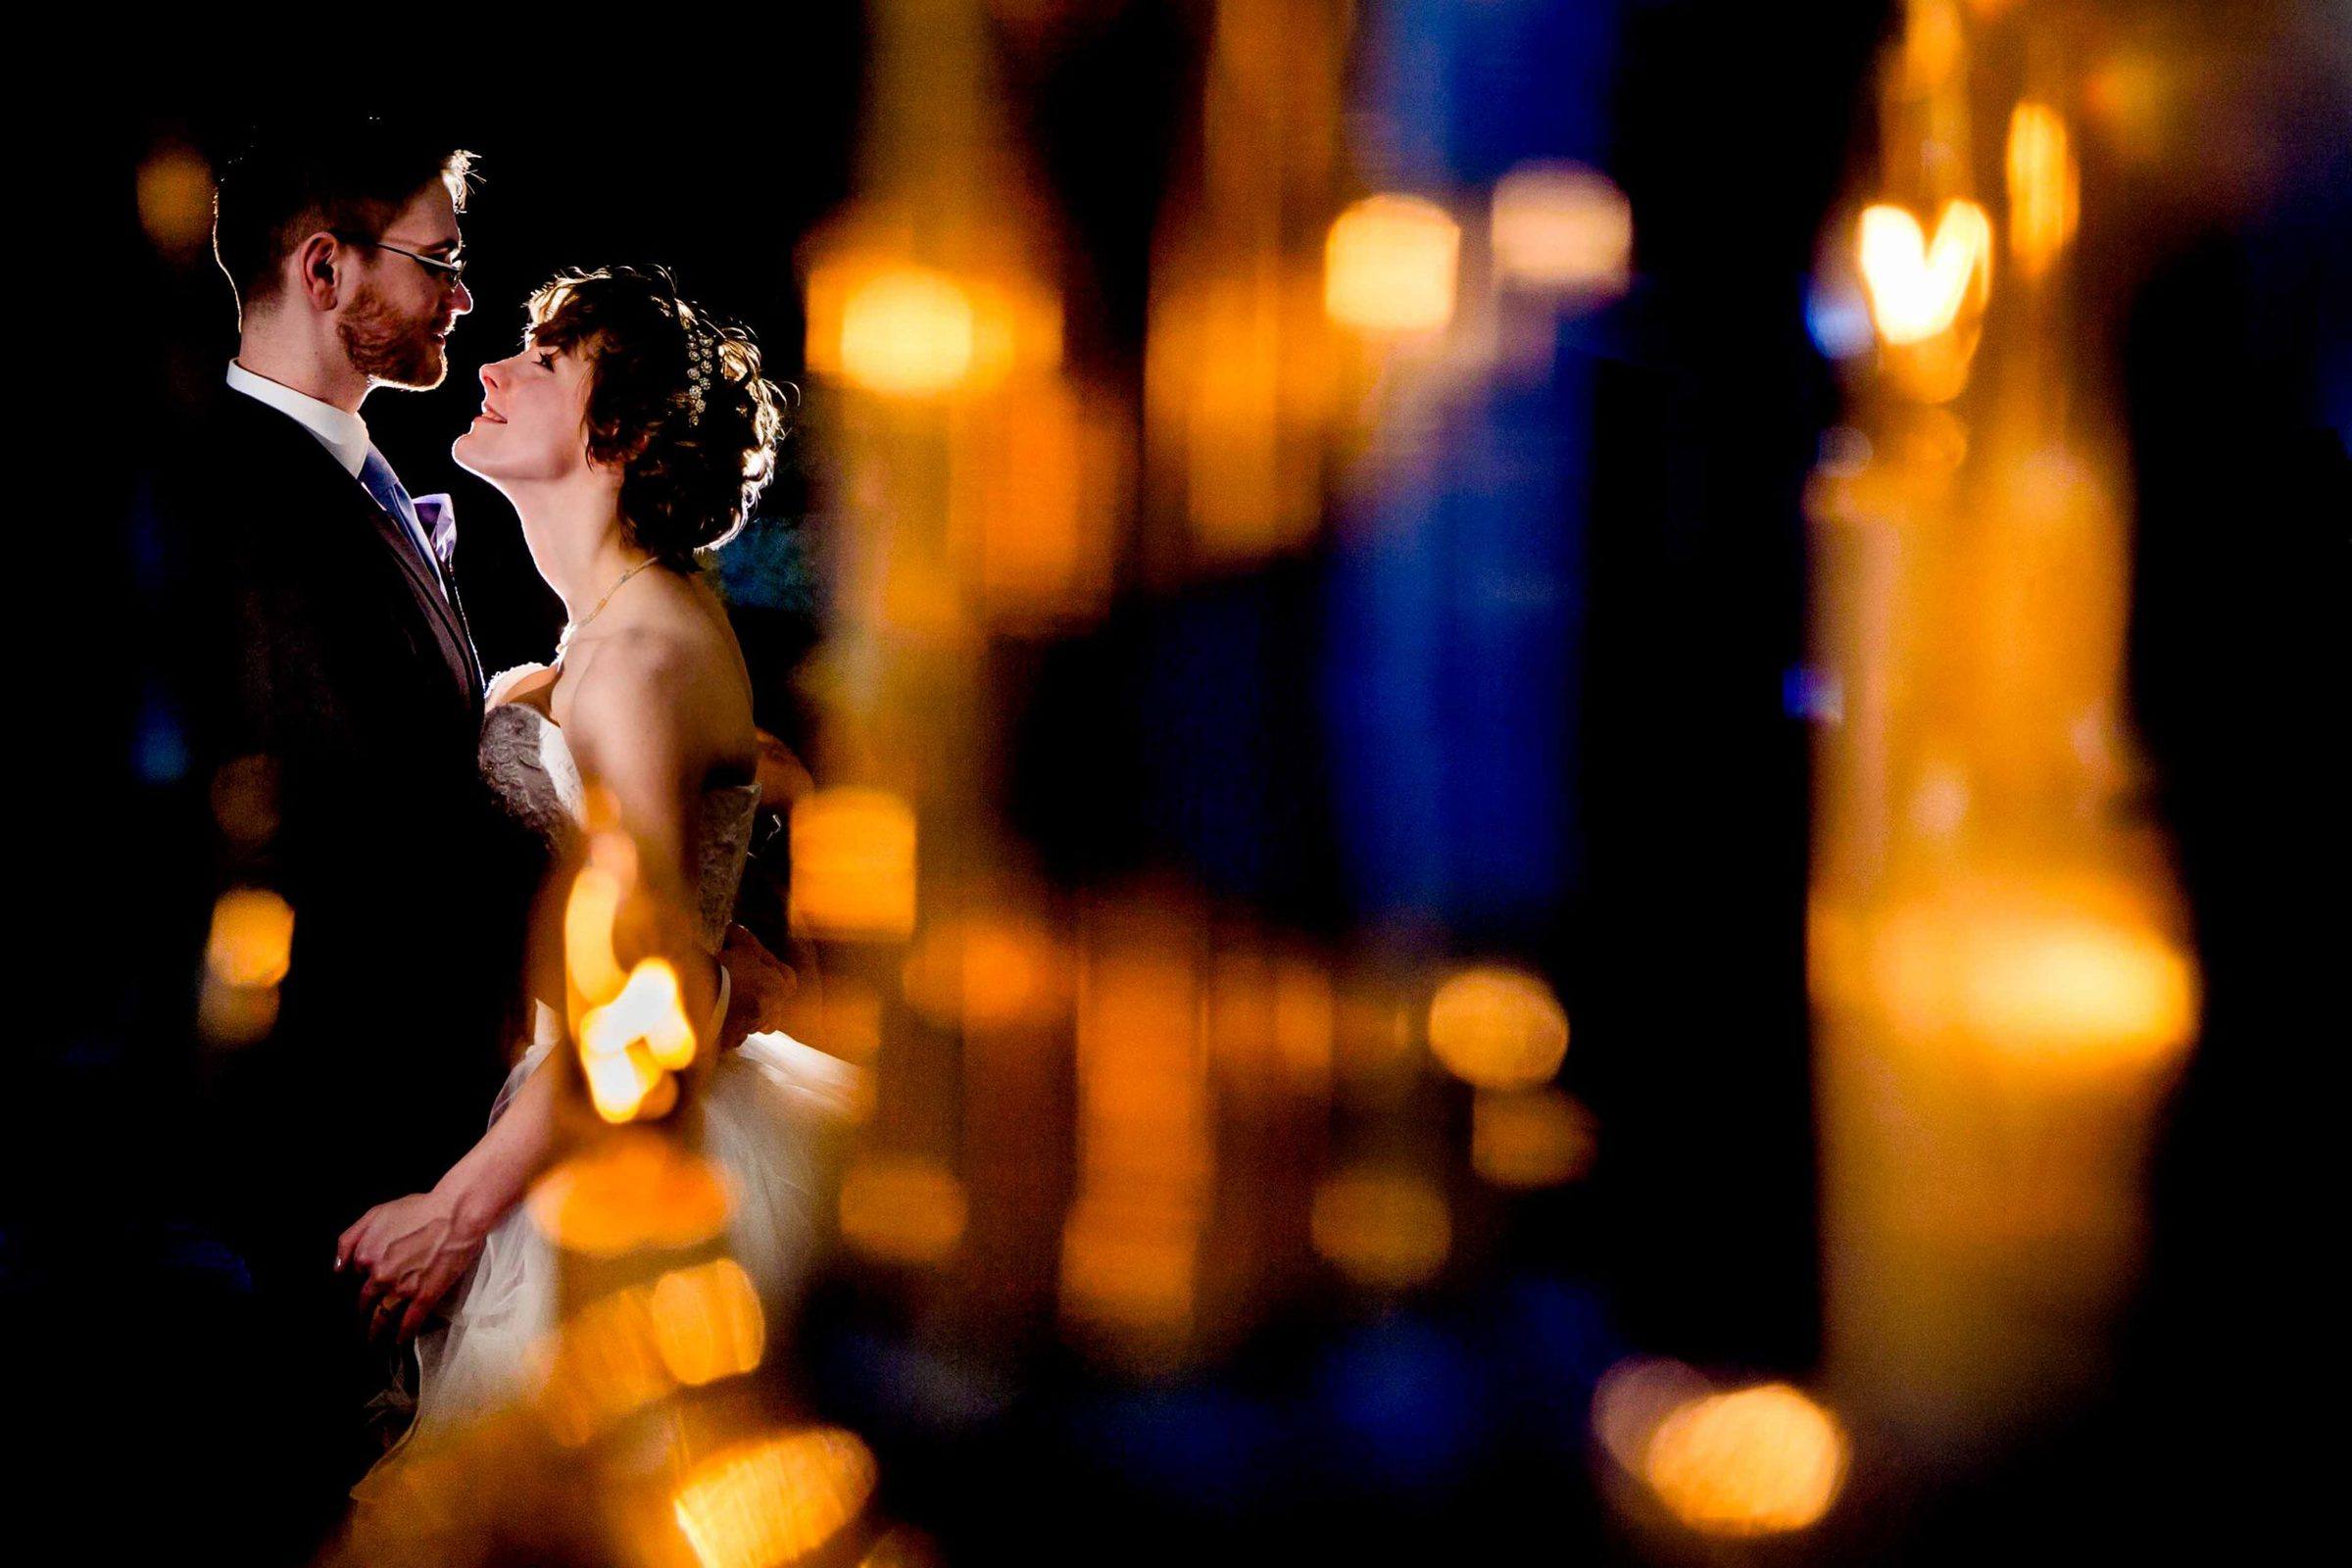 A very creative bride and groom portrait at Portland White House wedding reception